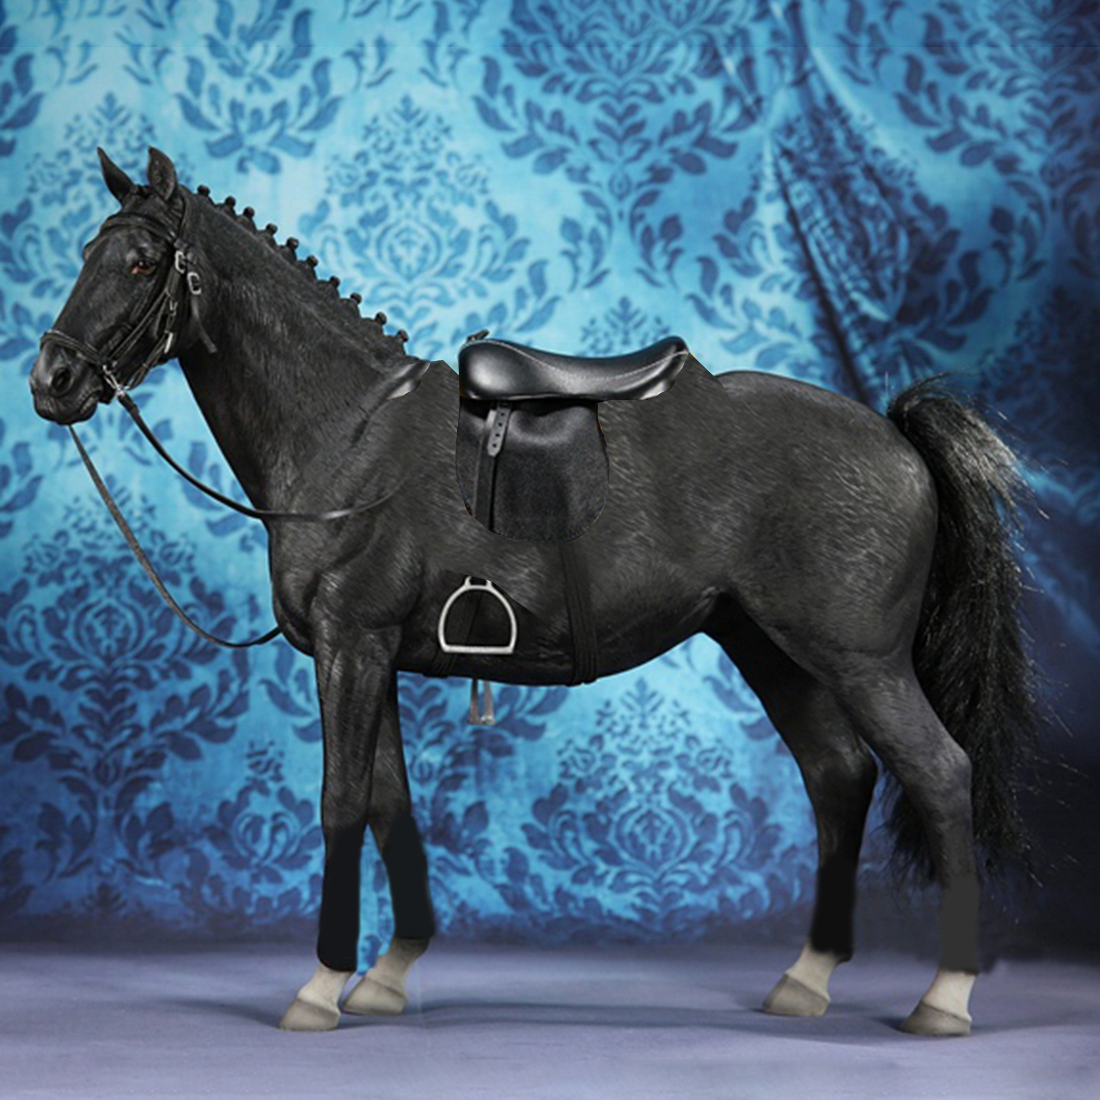 Rowsfire 1/6 32cm Germany Hannover Warm Blooded Model Simulation Horse Decoration - Black